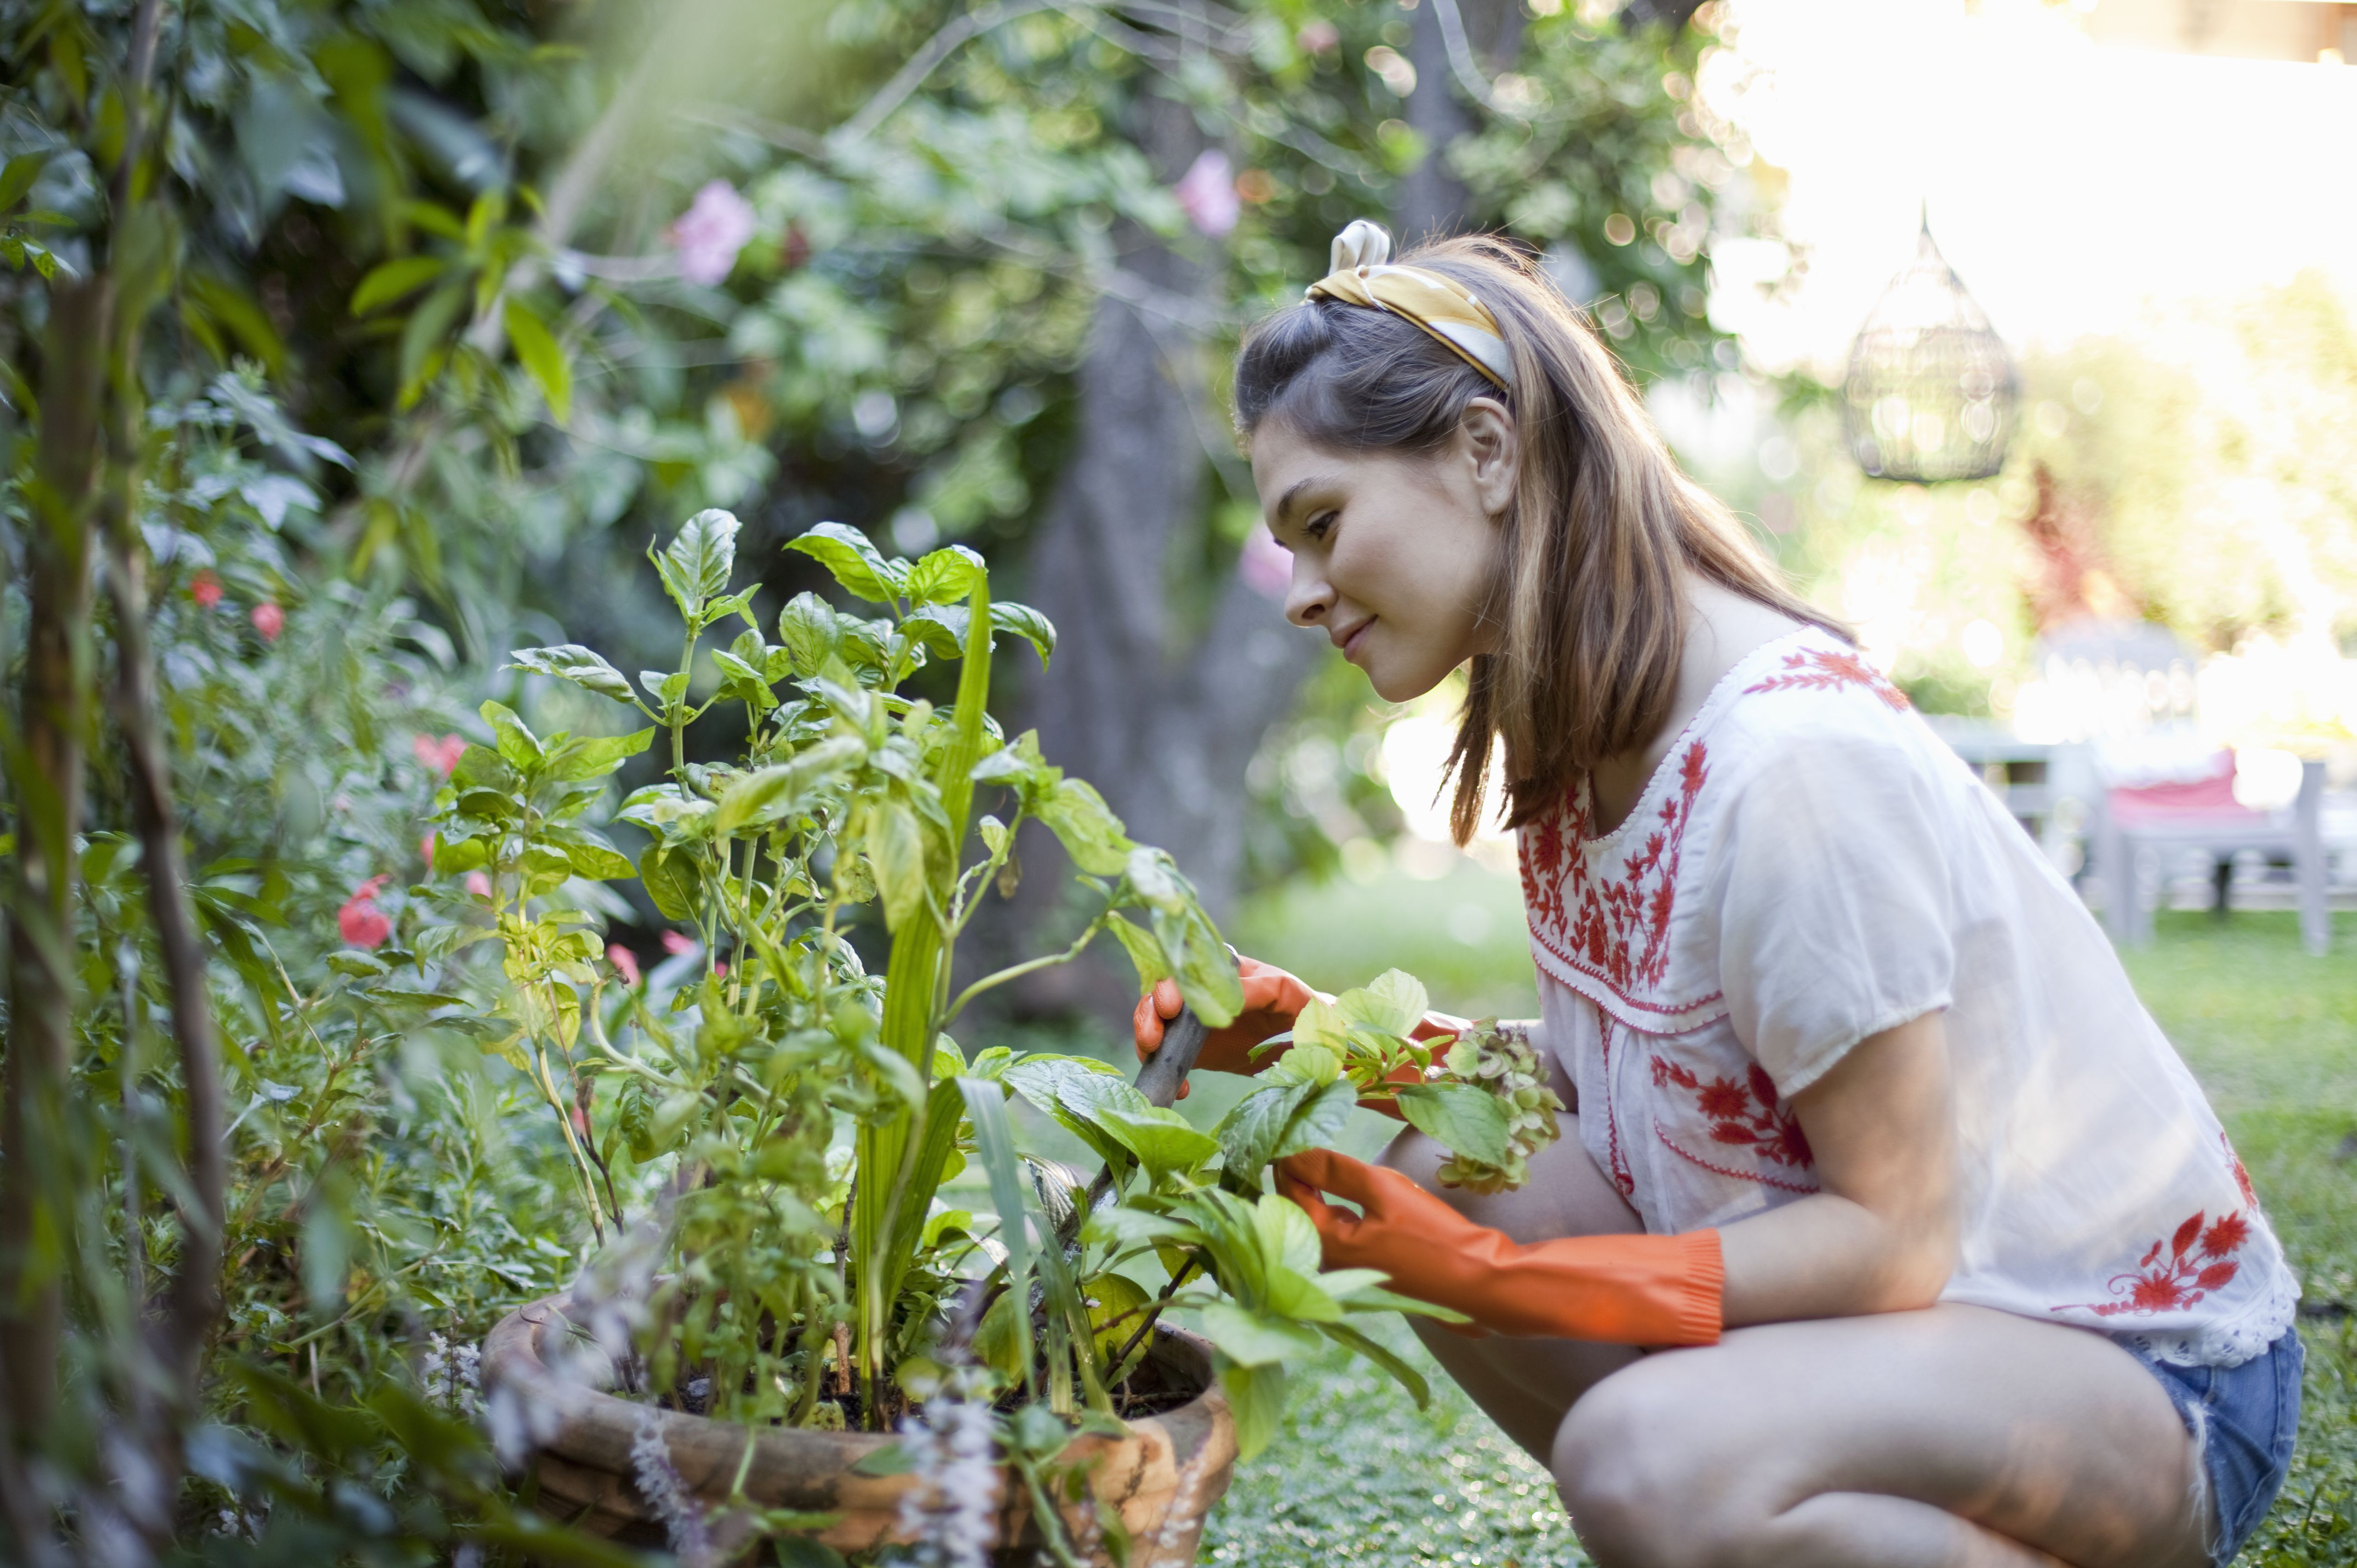 people gardening pictures - HD1280×853